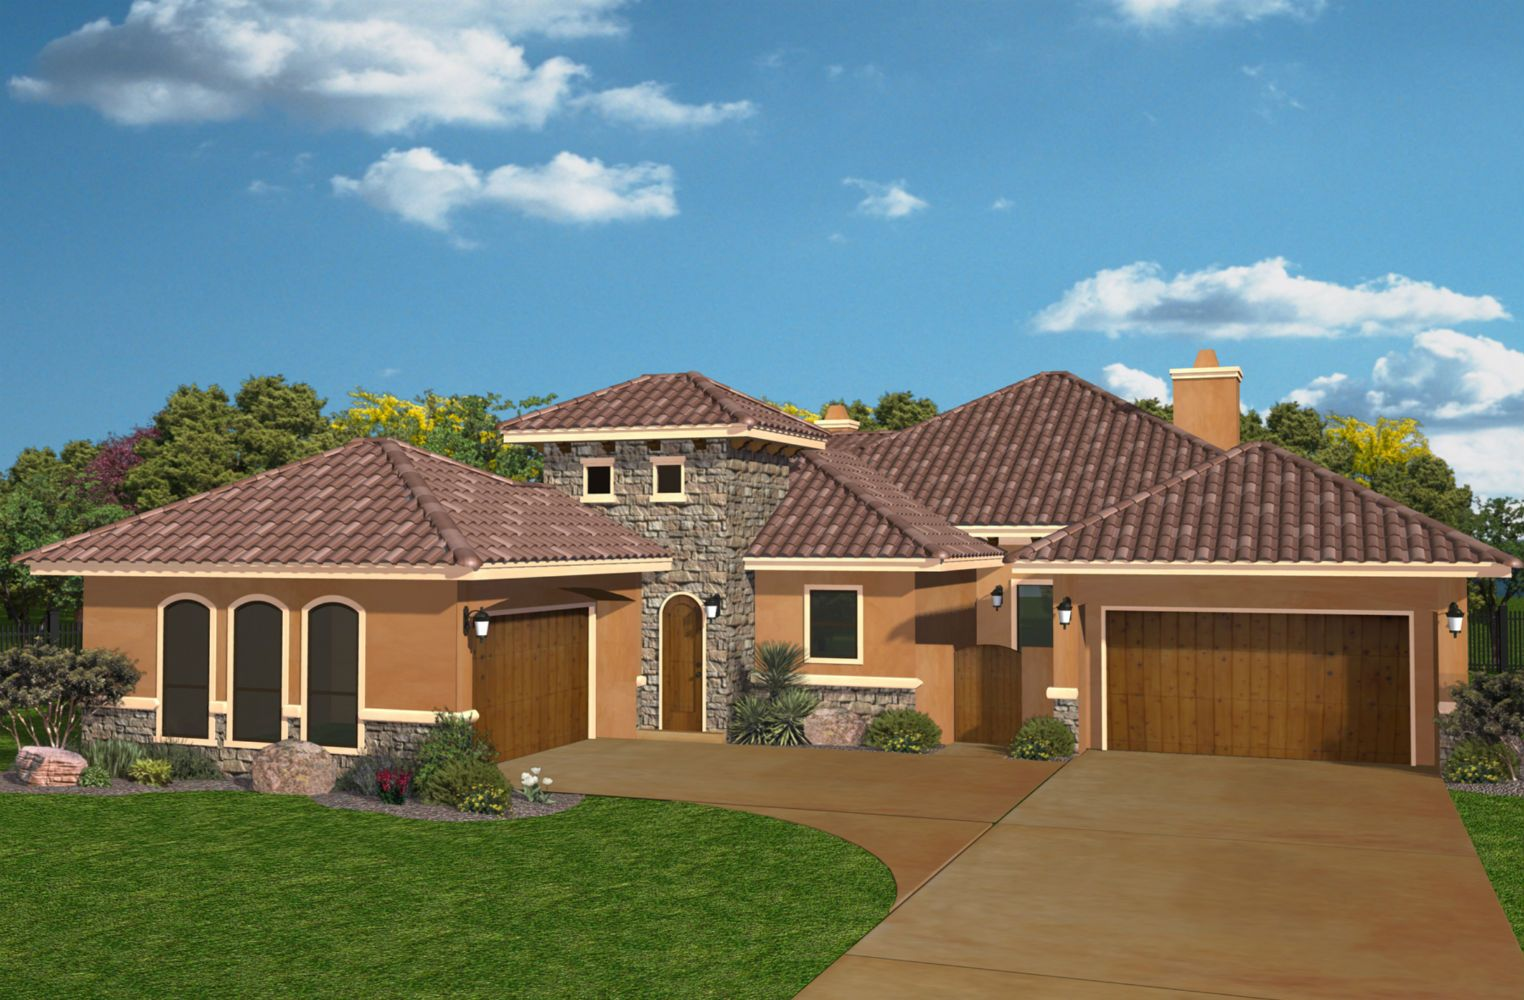 Pin By Carmen Wheatley On For The Home Duplex House Plans House Plans House Design